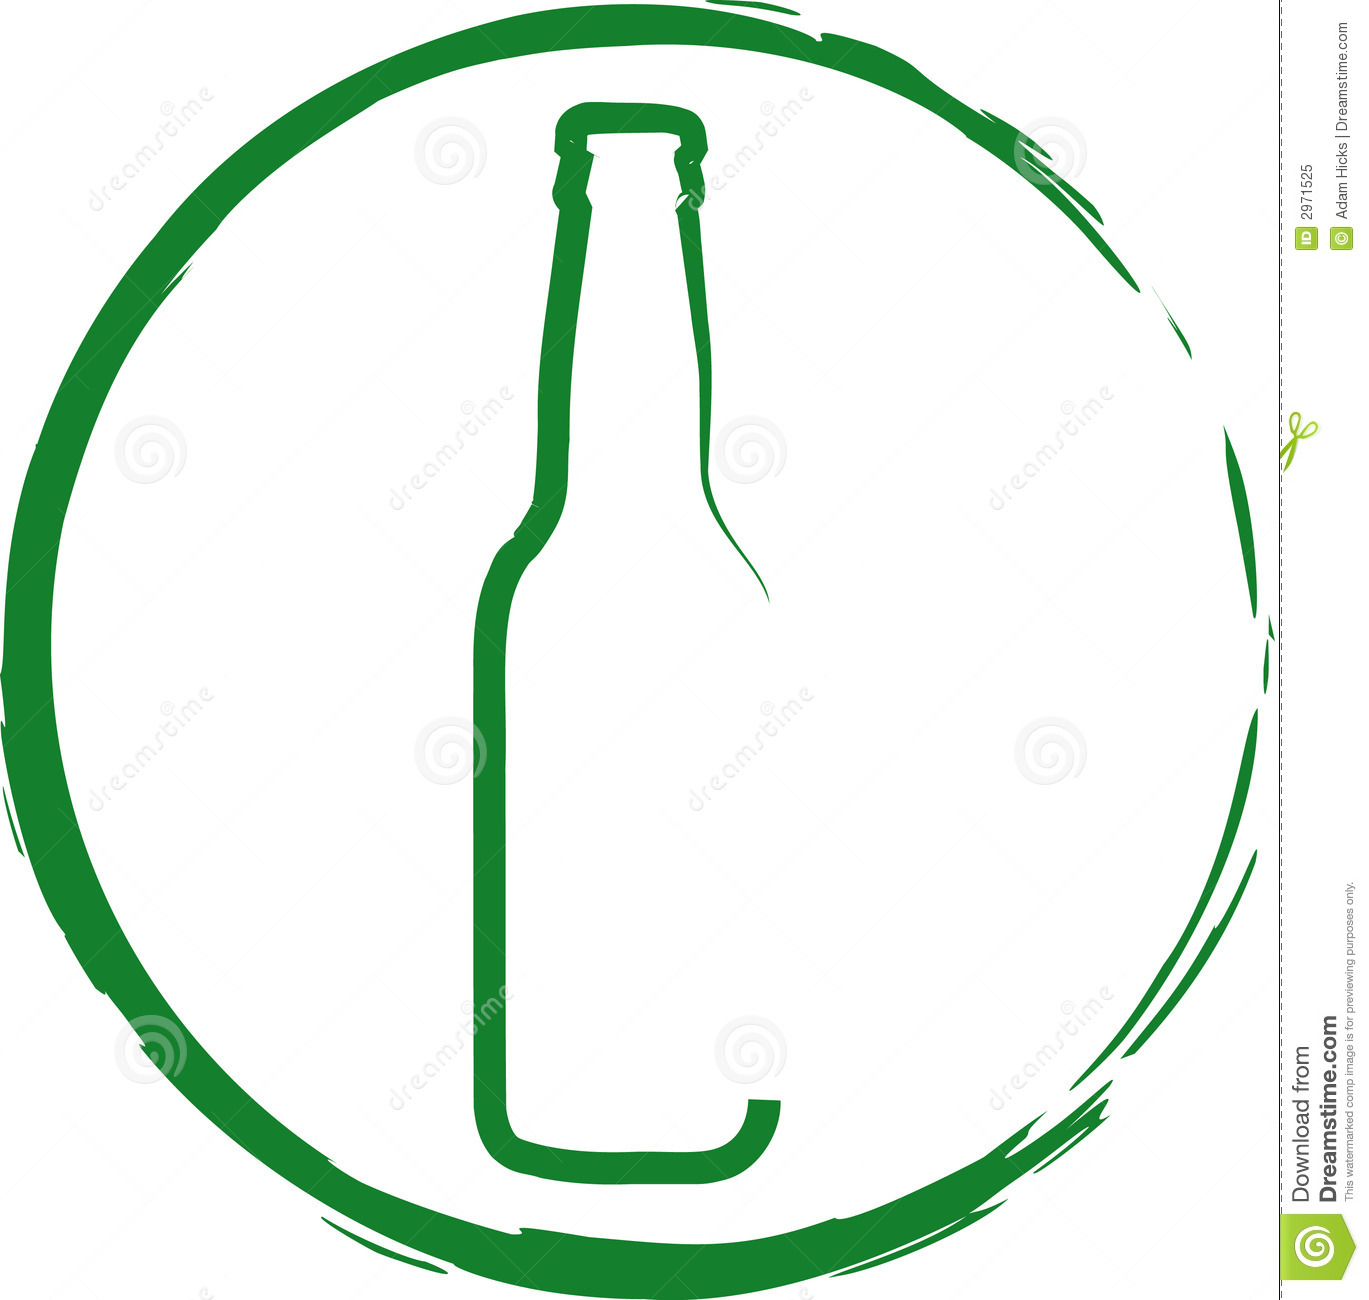 Beer Logo Royalty Free Stock Photo - Image: 2971525